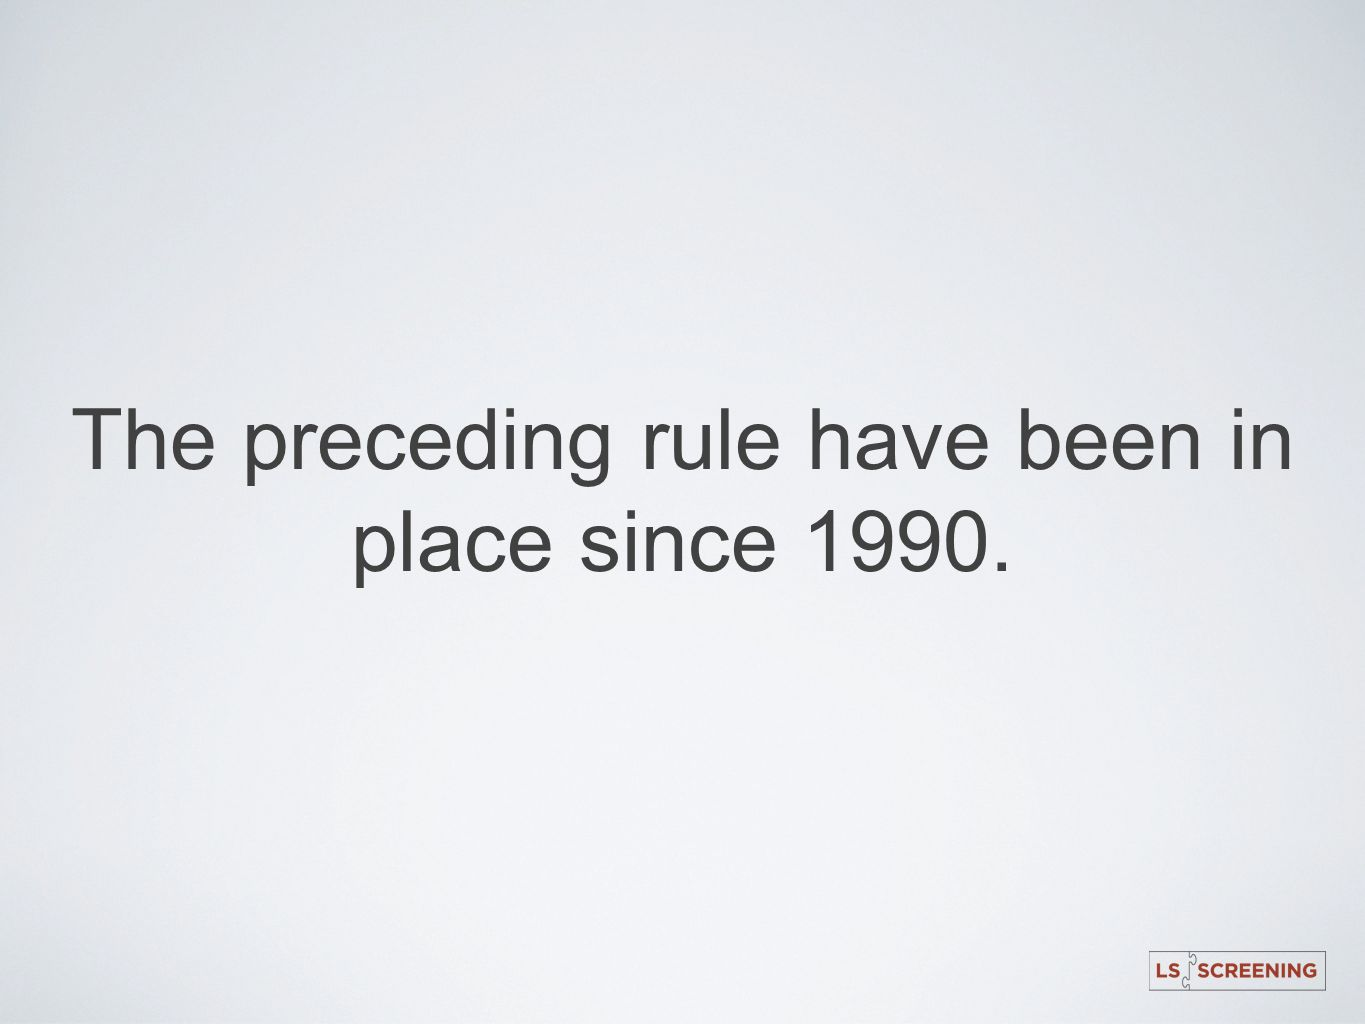 The preceding rule have been in place since 1990.